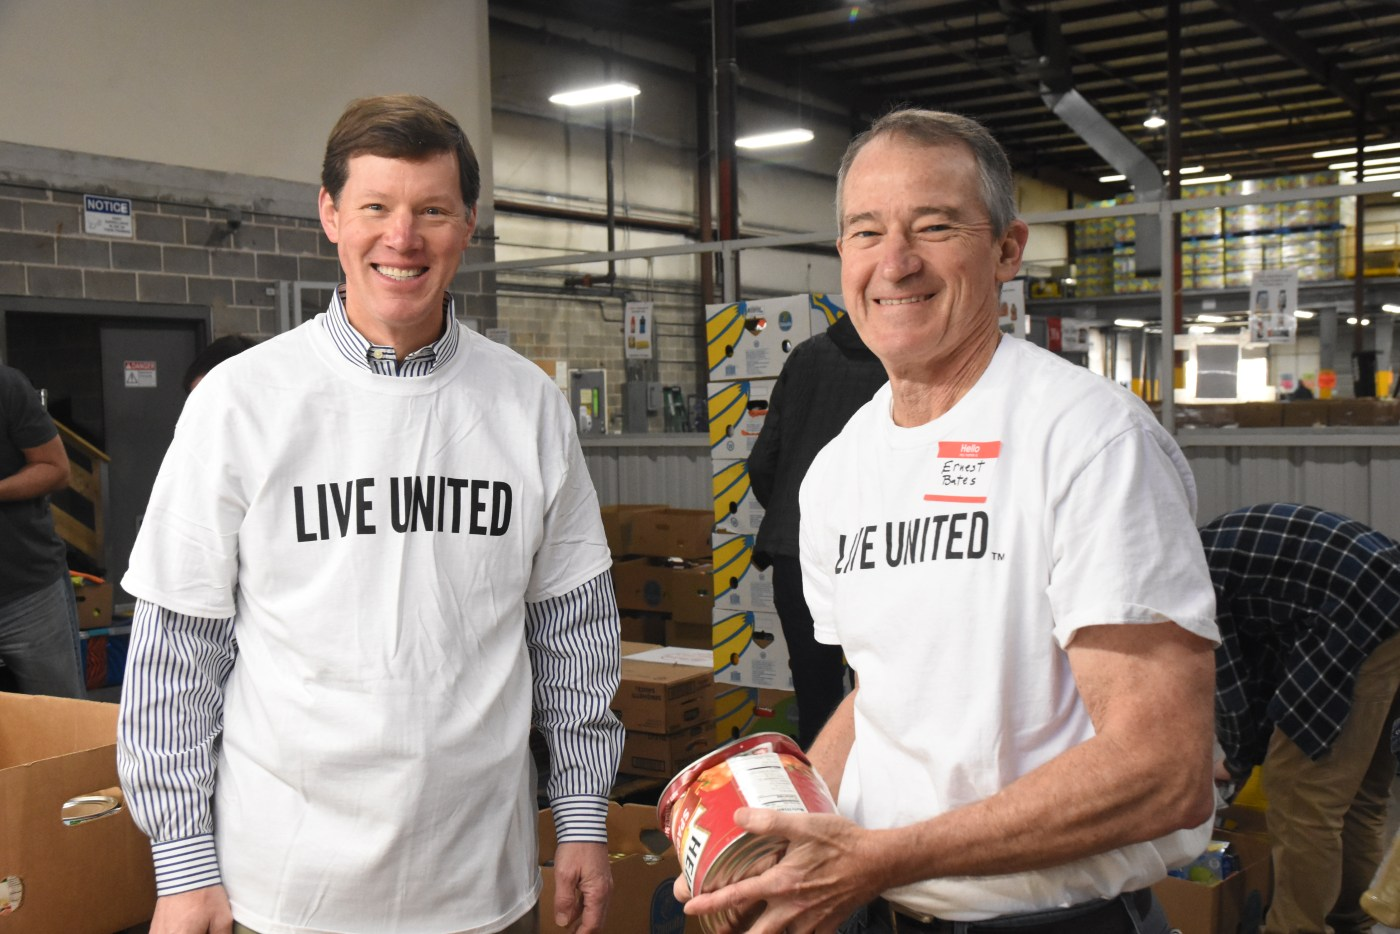 UWCA's Tocqueville Society and Young Philanthropist Society volunteering